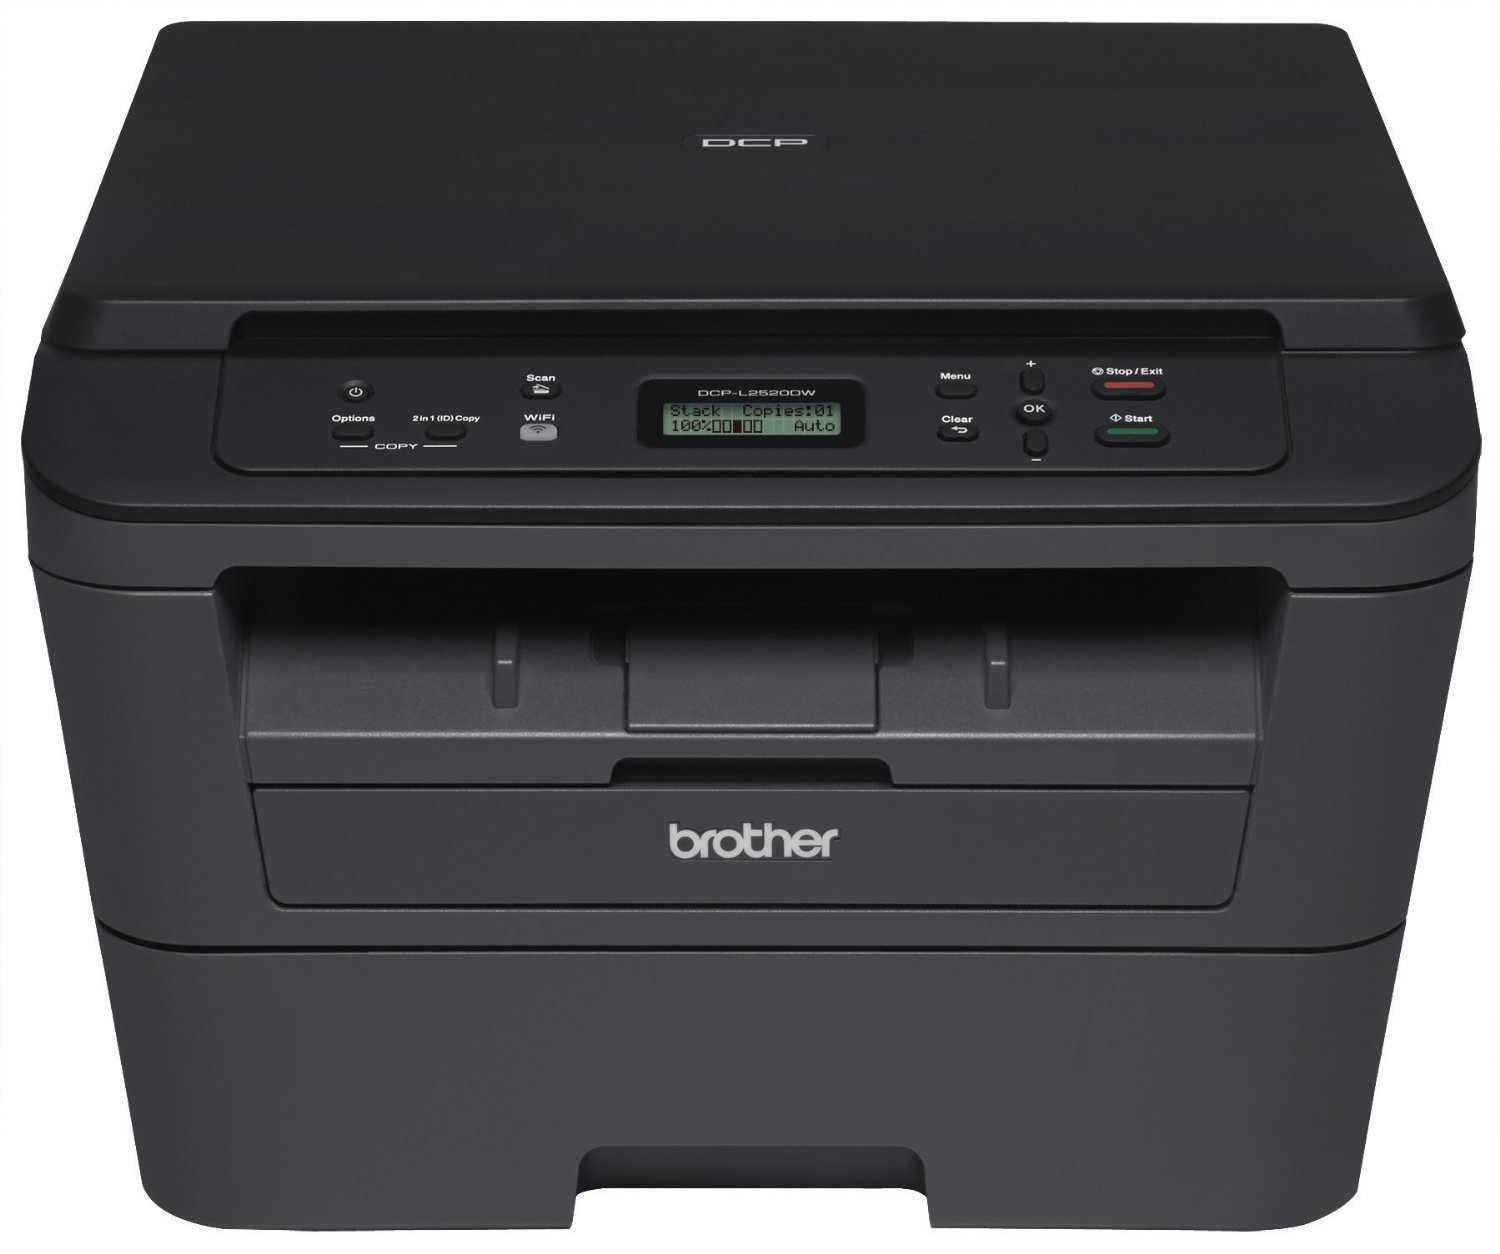 МФУ А4 монохромное Brother DCP-L2520DWR (DCPL2520DWR1)